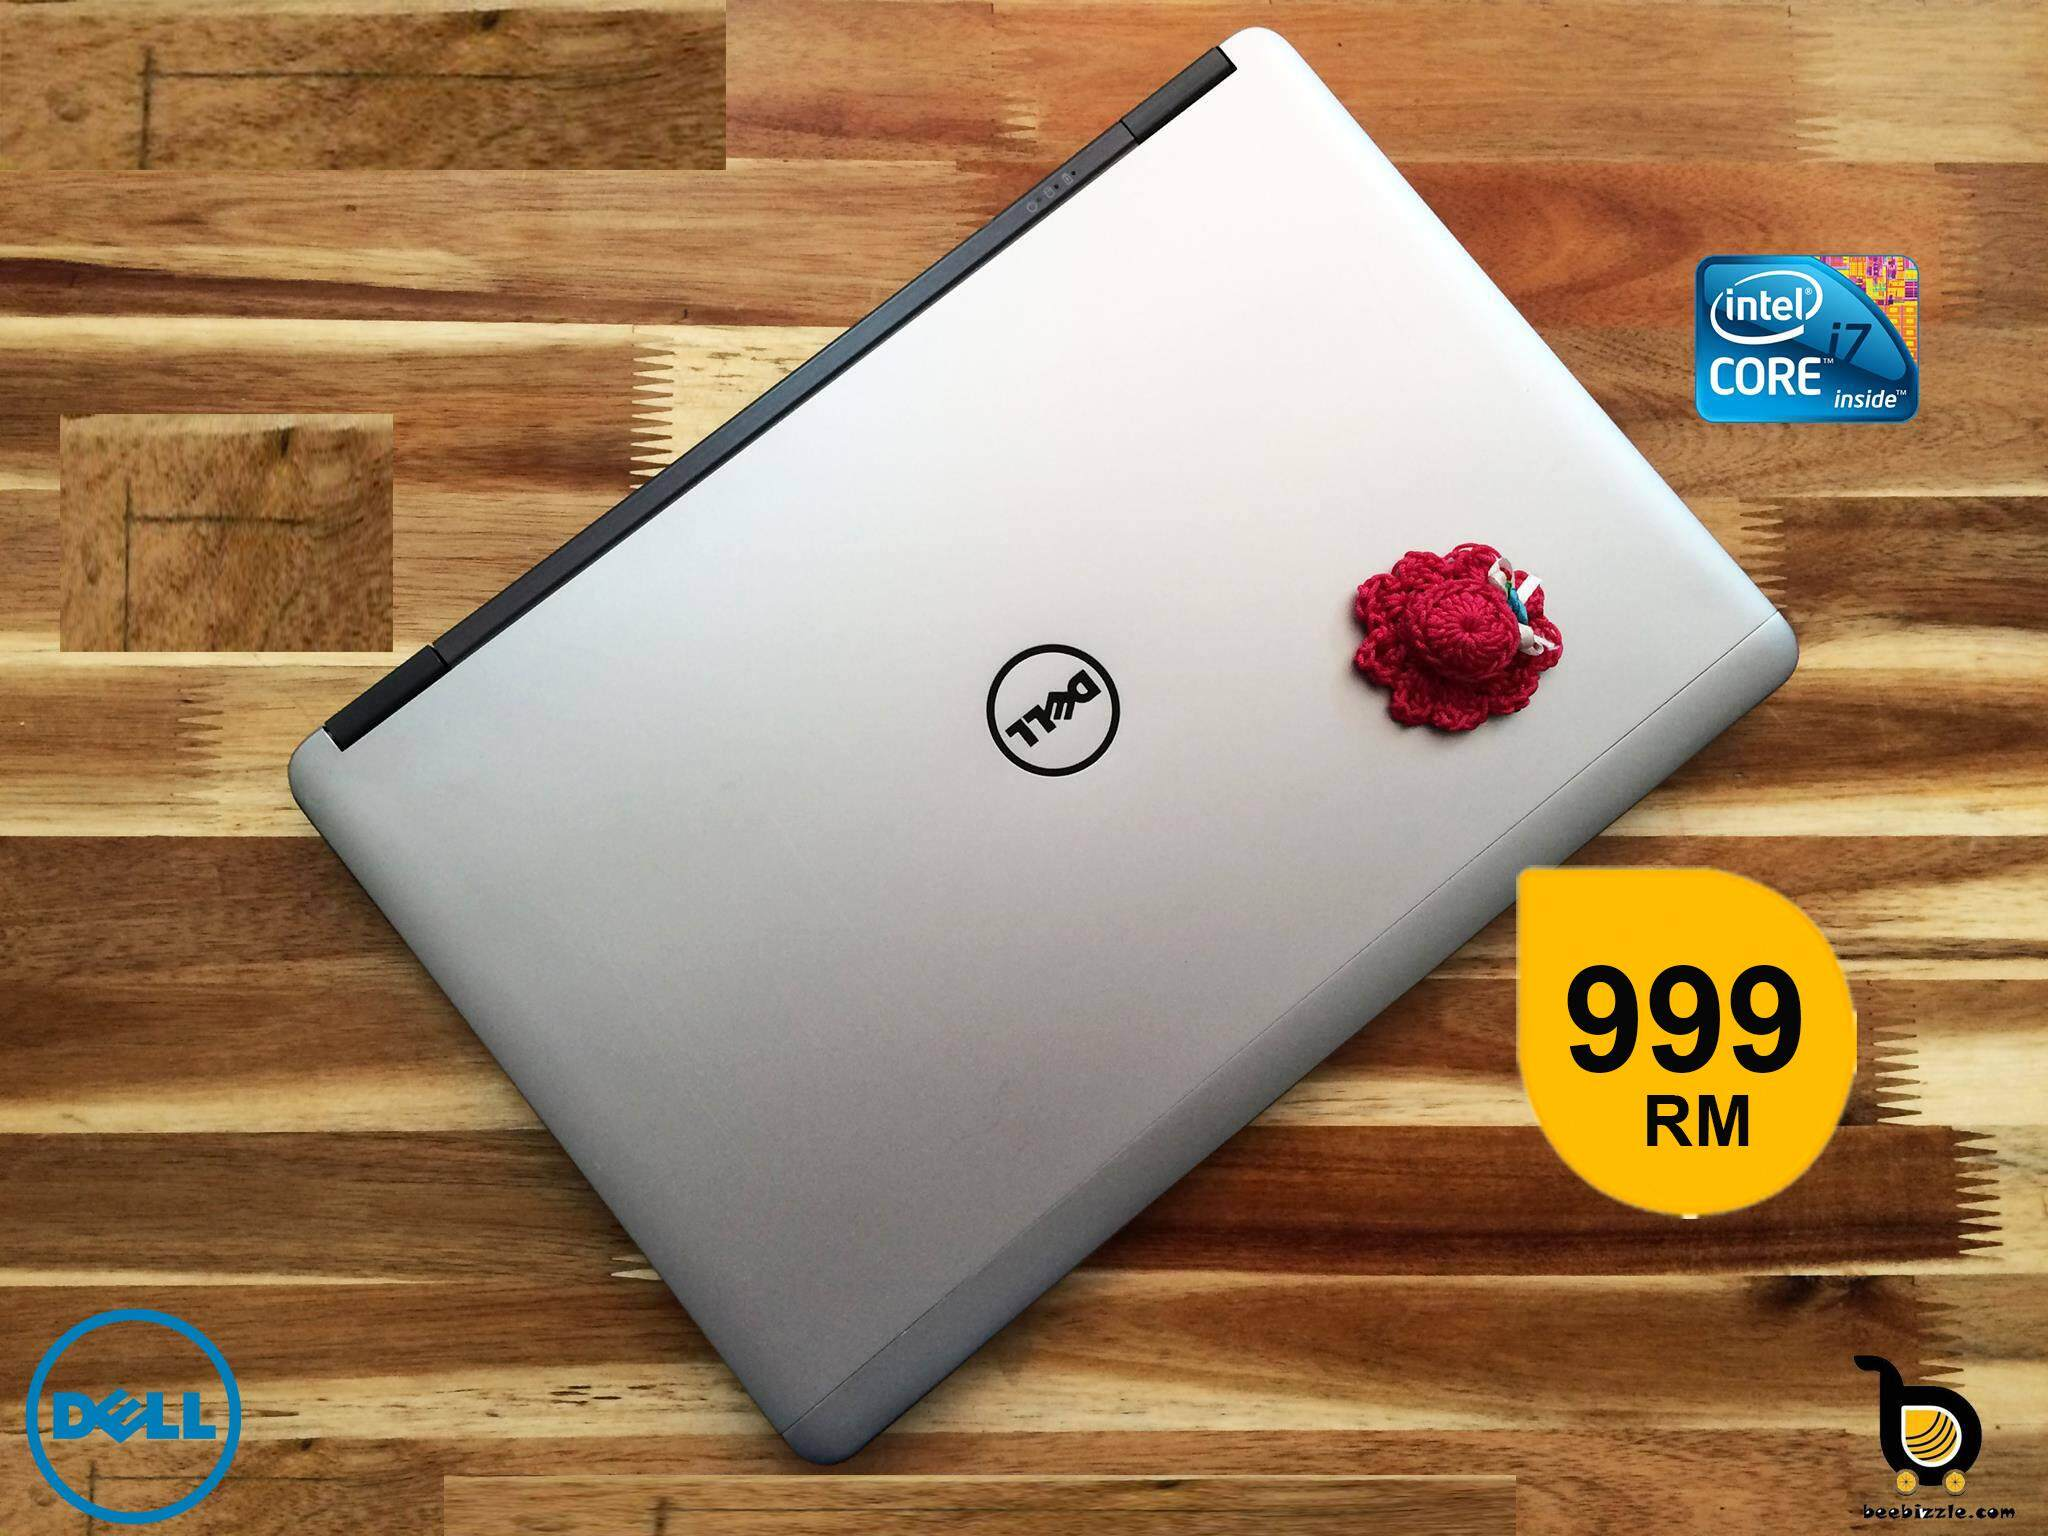 Dell Latitude E7240, Intel Core i7 Processor, 4GB RAM, 128GB SSD, 12.5 Inch Screen, WLAN, Bluetooth, Web Camera, HD Graphics, Windows Malaysia